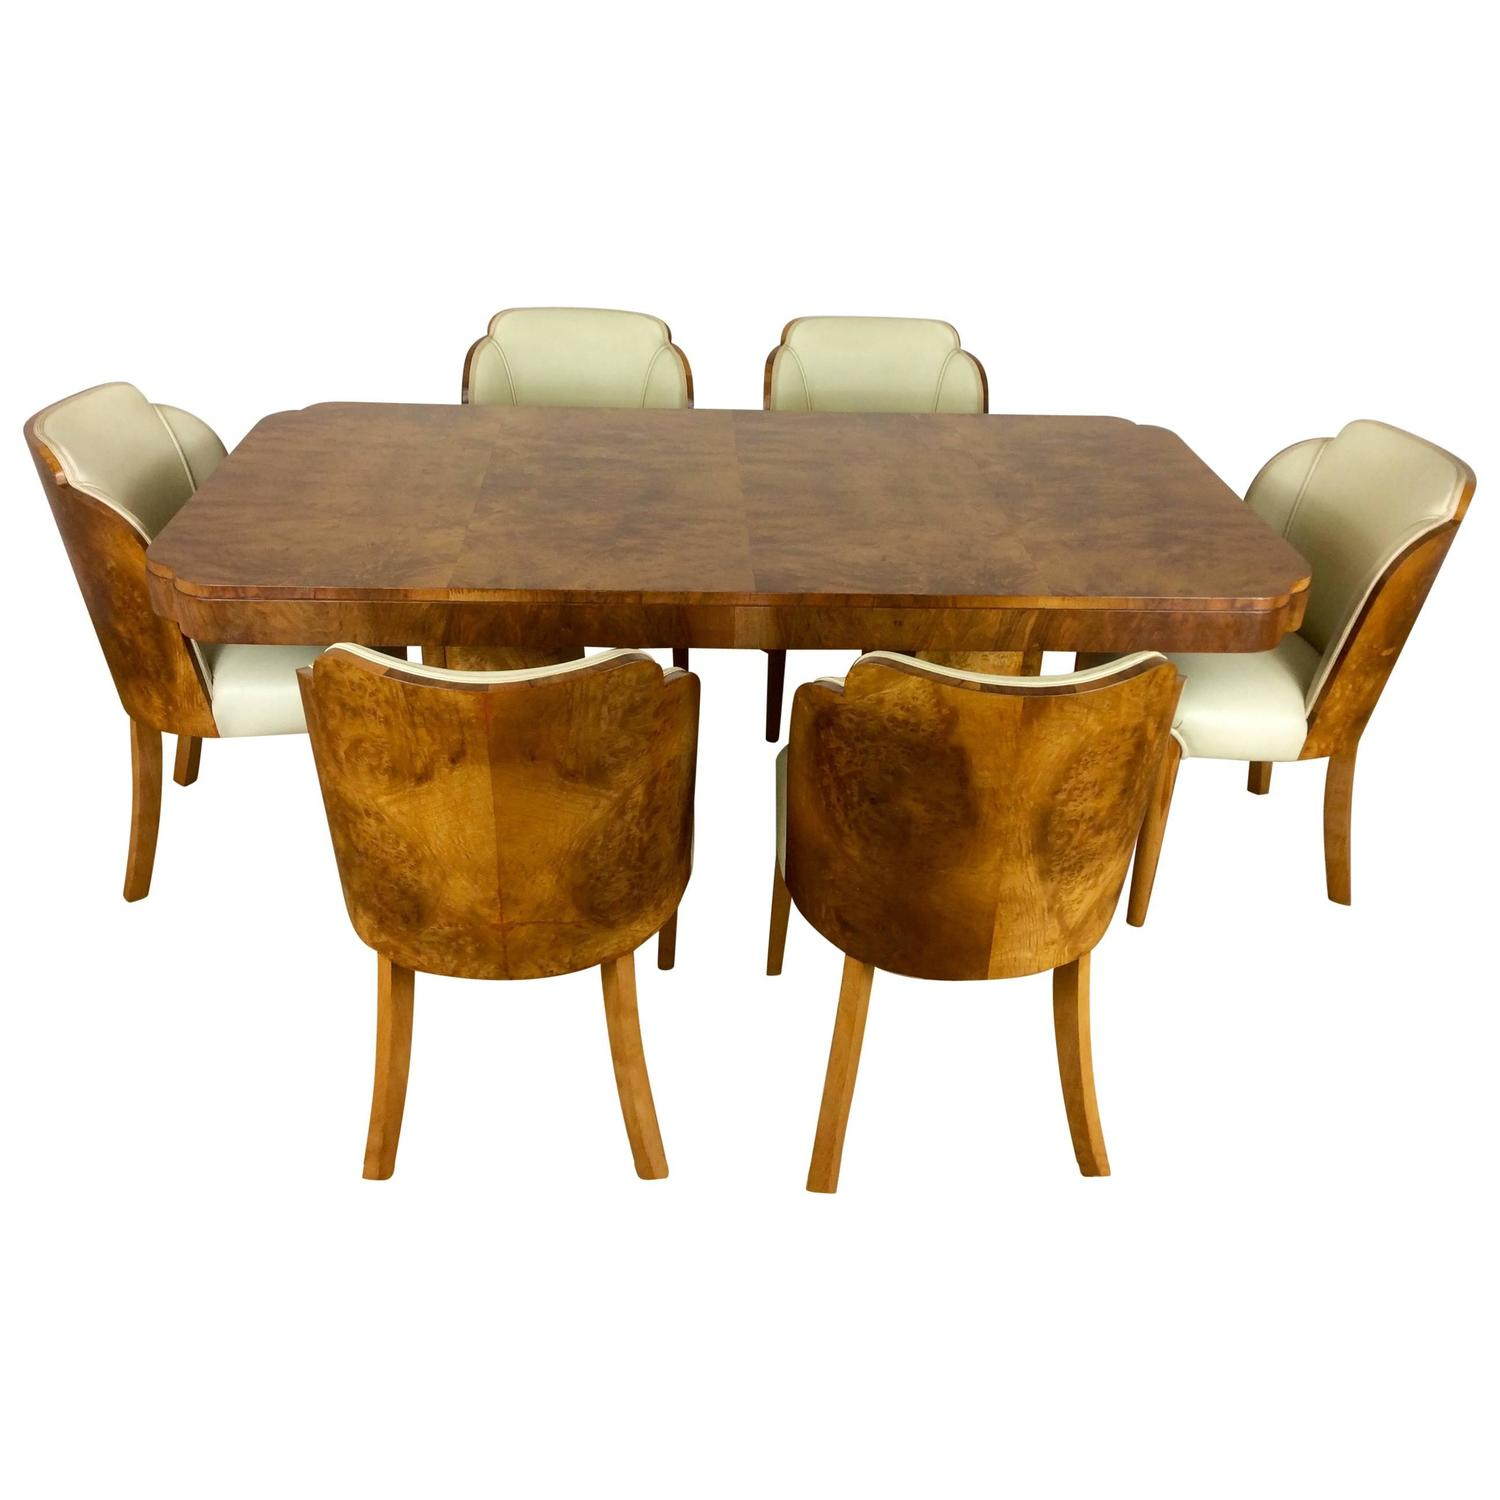 Art Deco Cloud Design Dining Table And Chairs In A Stunning Maple For Sale At